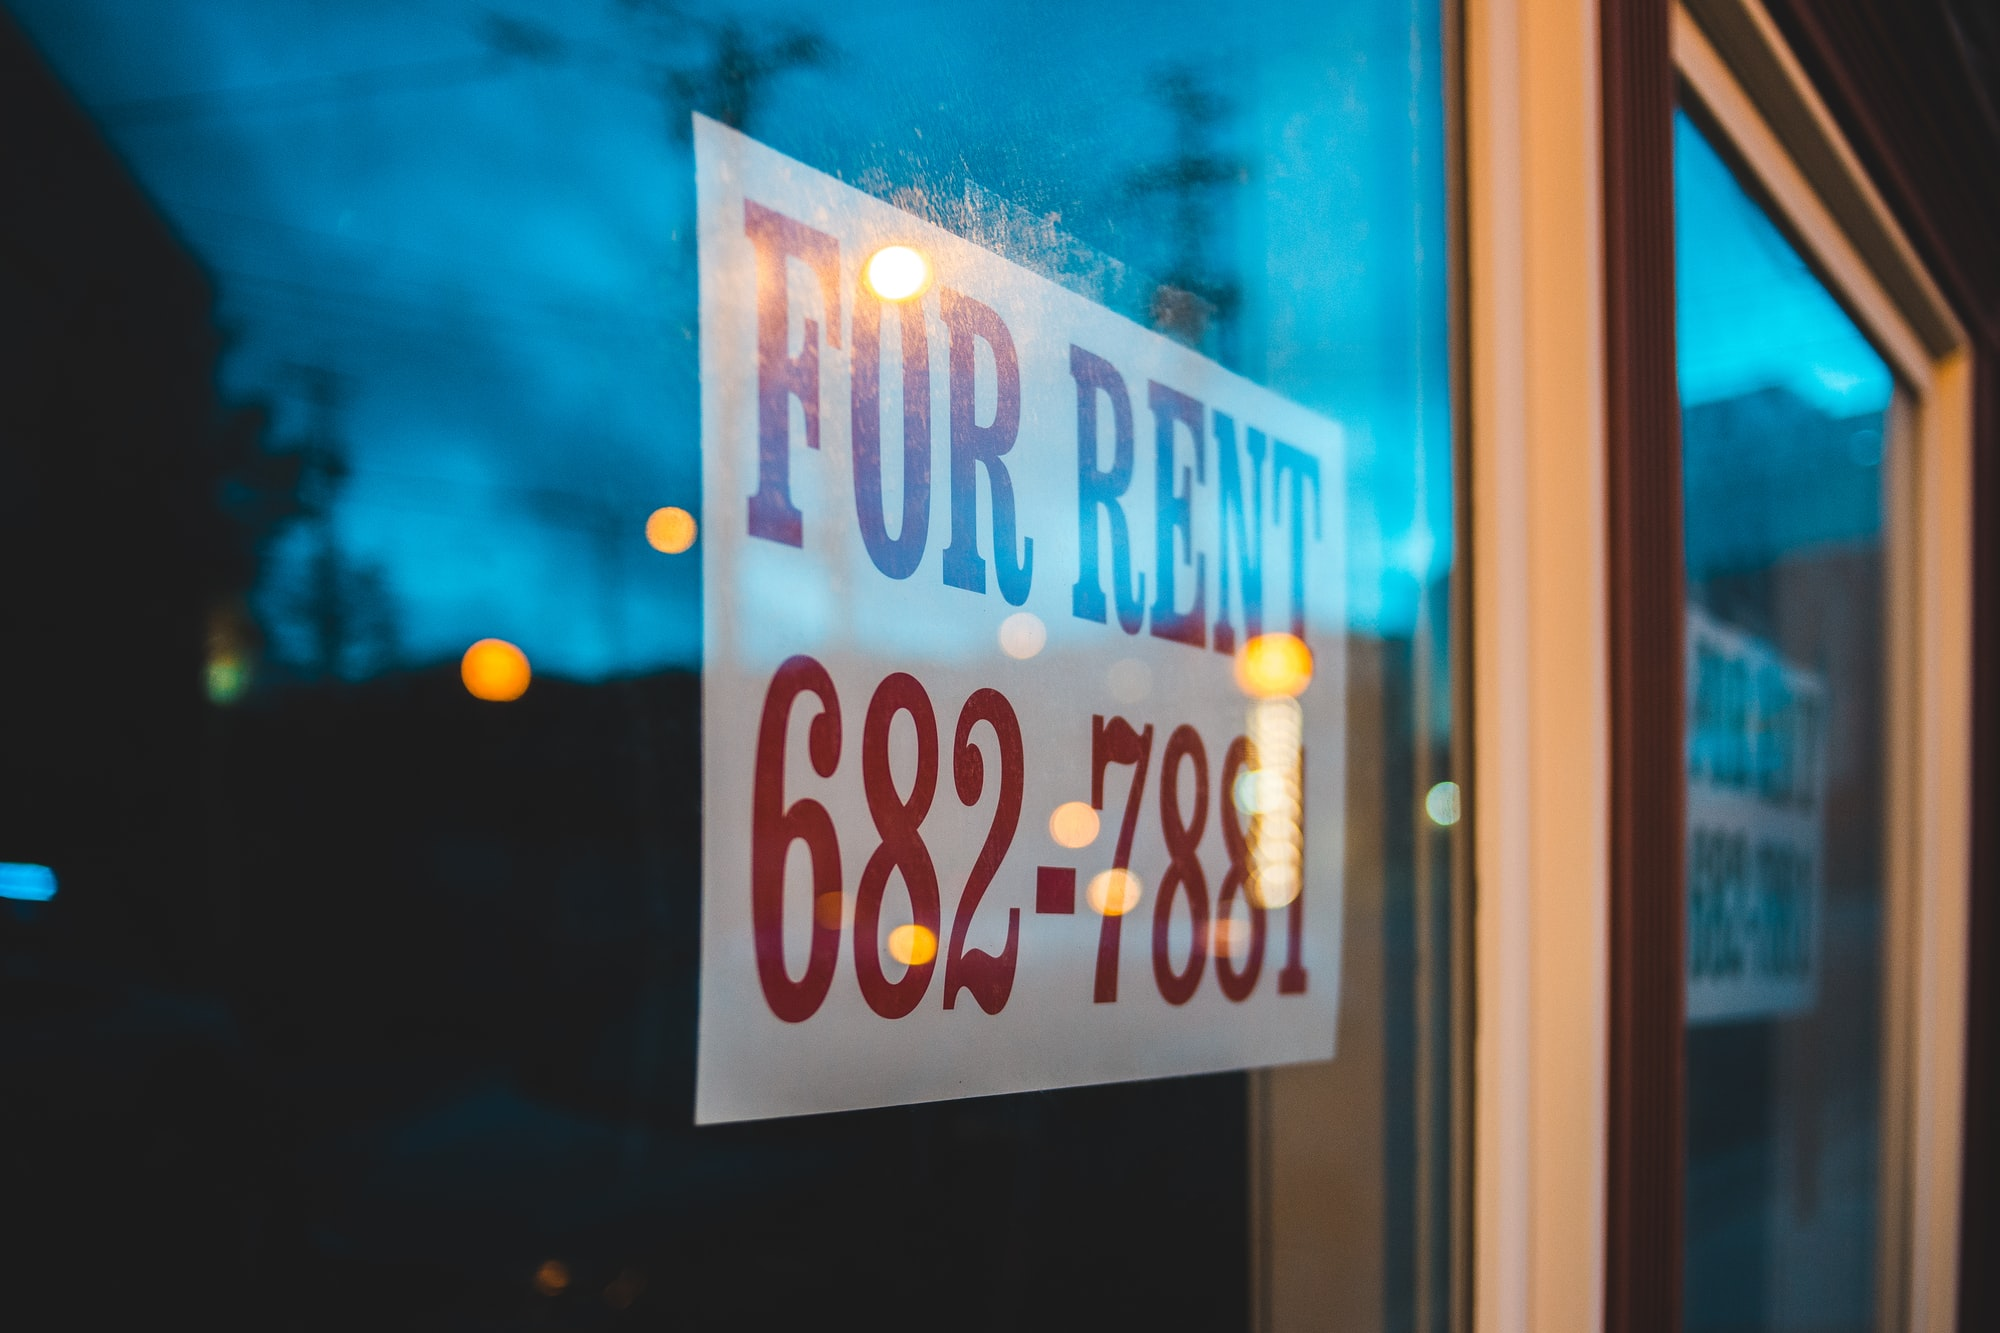 Not funny: State governments are playing games with needed rent relief